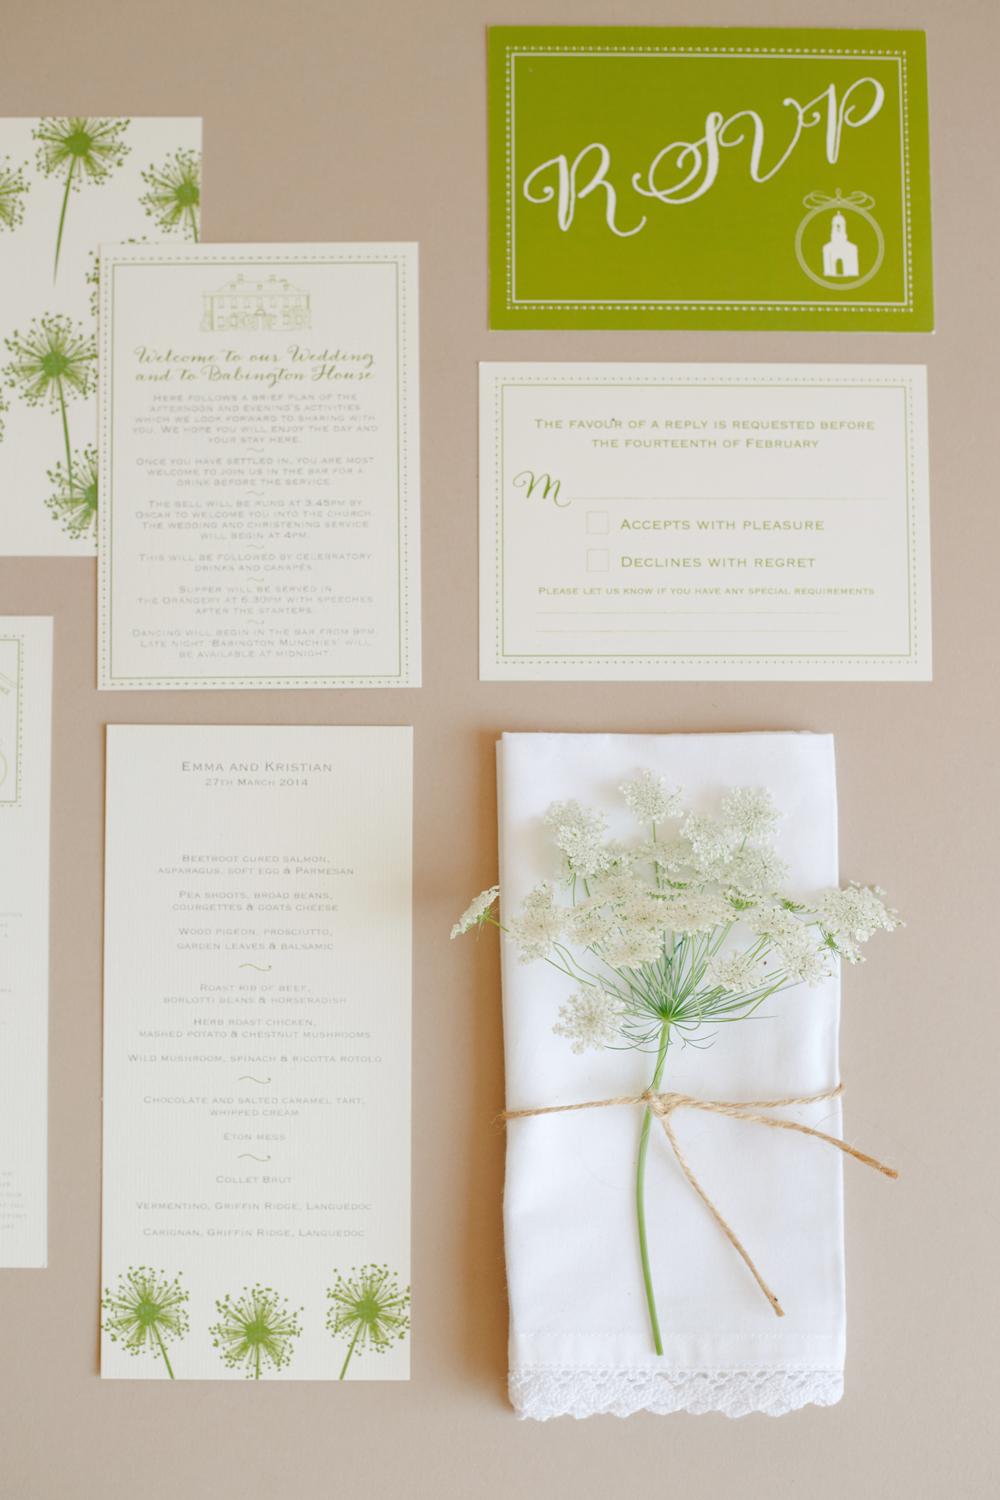 Babington House, Bespoke wedding stationery, invitations, RSVP, map, Order of Service, menu, green and white